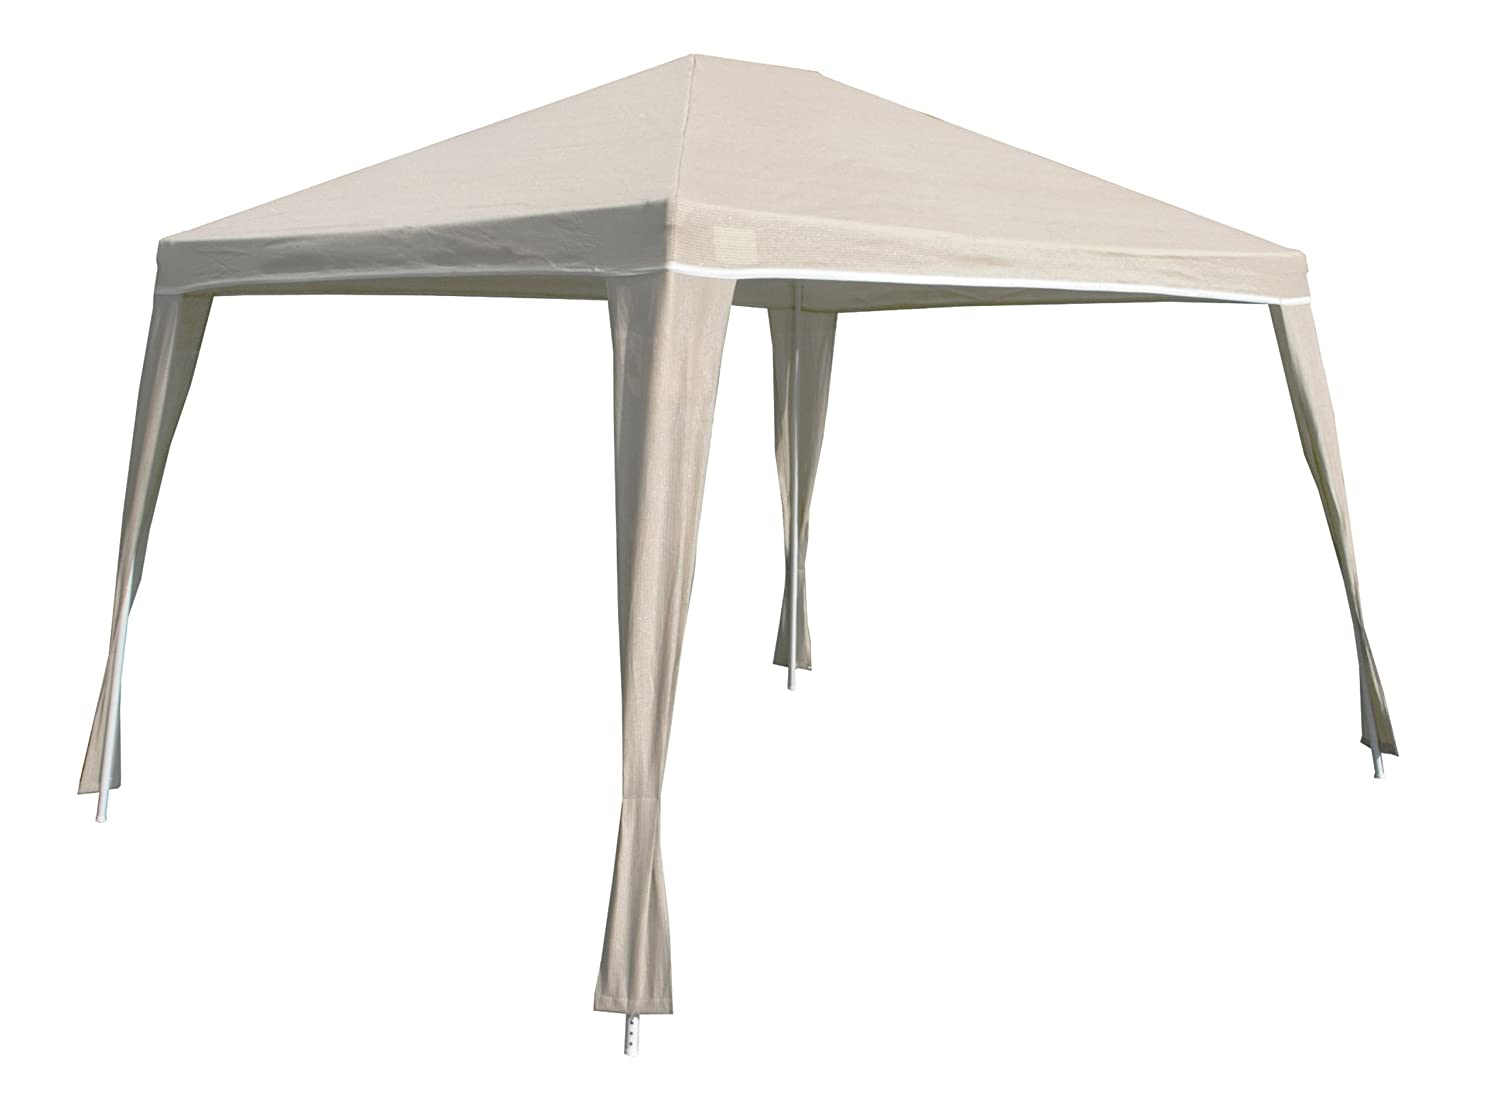 Amazon.com Coolaroo Isabella Steel Post Gazebo 10-Foot by 12-Foot Camel Garden u0026 Outdoor  sc 1 st  Amazon.com & Amazon.com: Coolaroo Isabella Steel Post Gazebo 10-Foot by 12-Foot ...